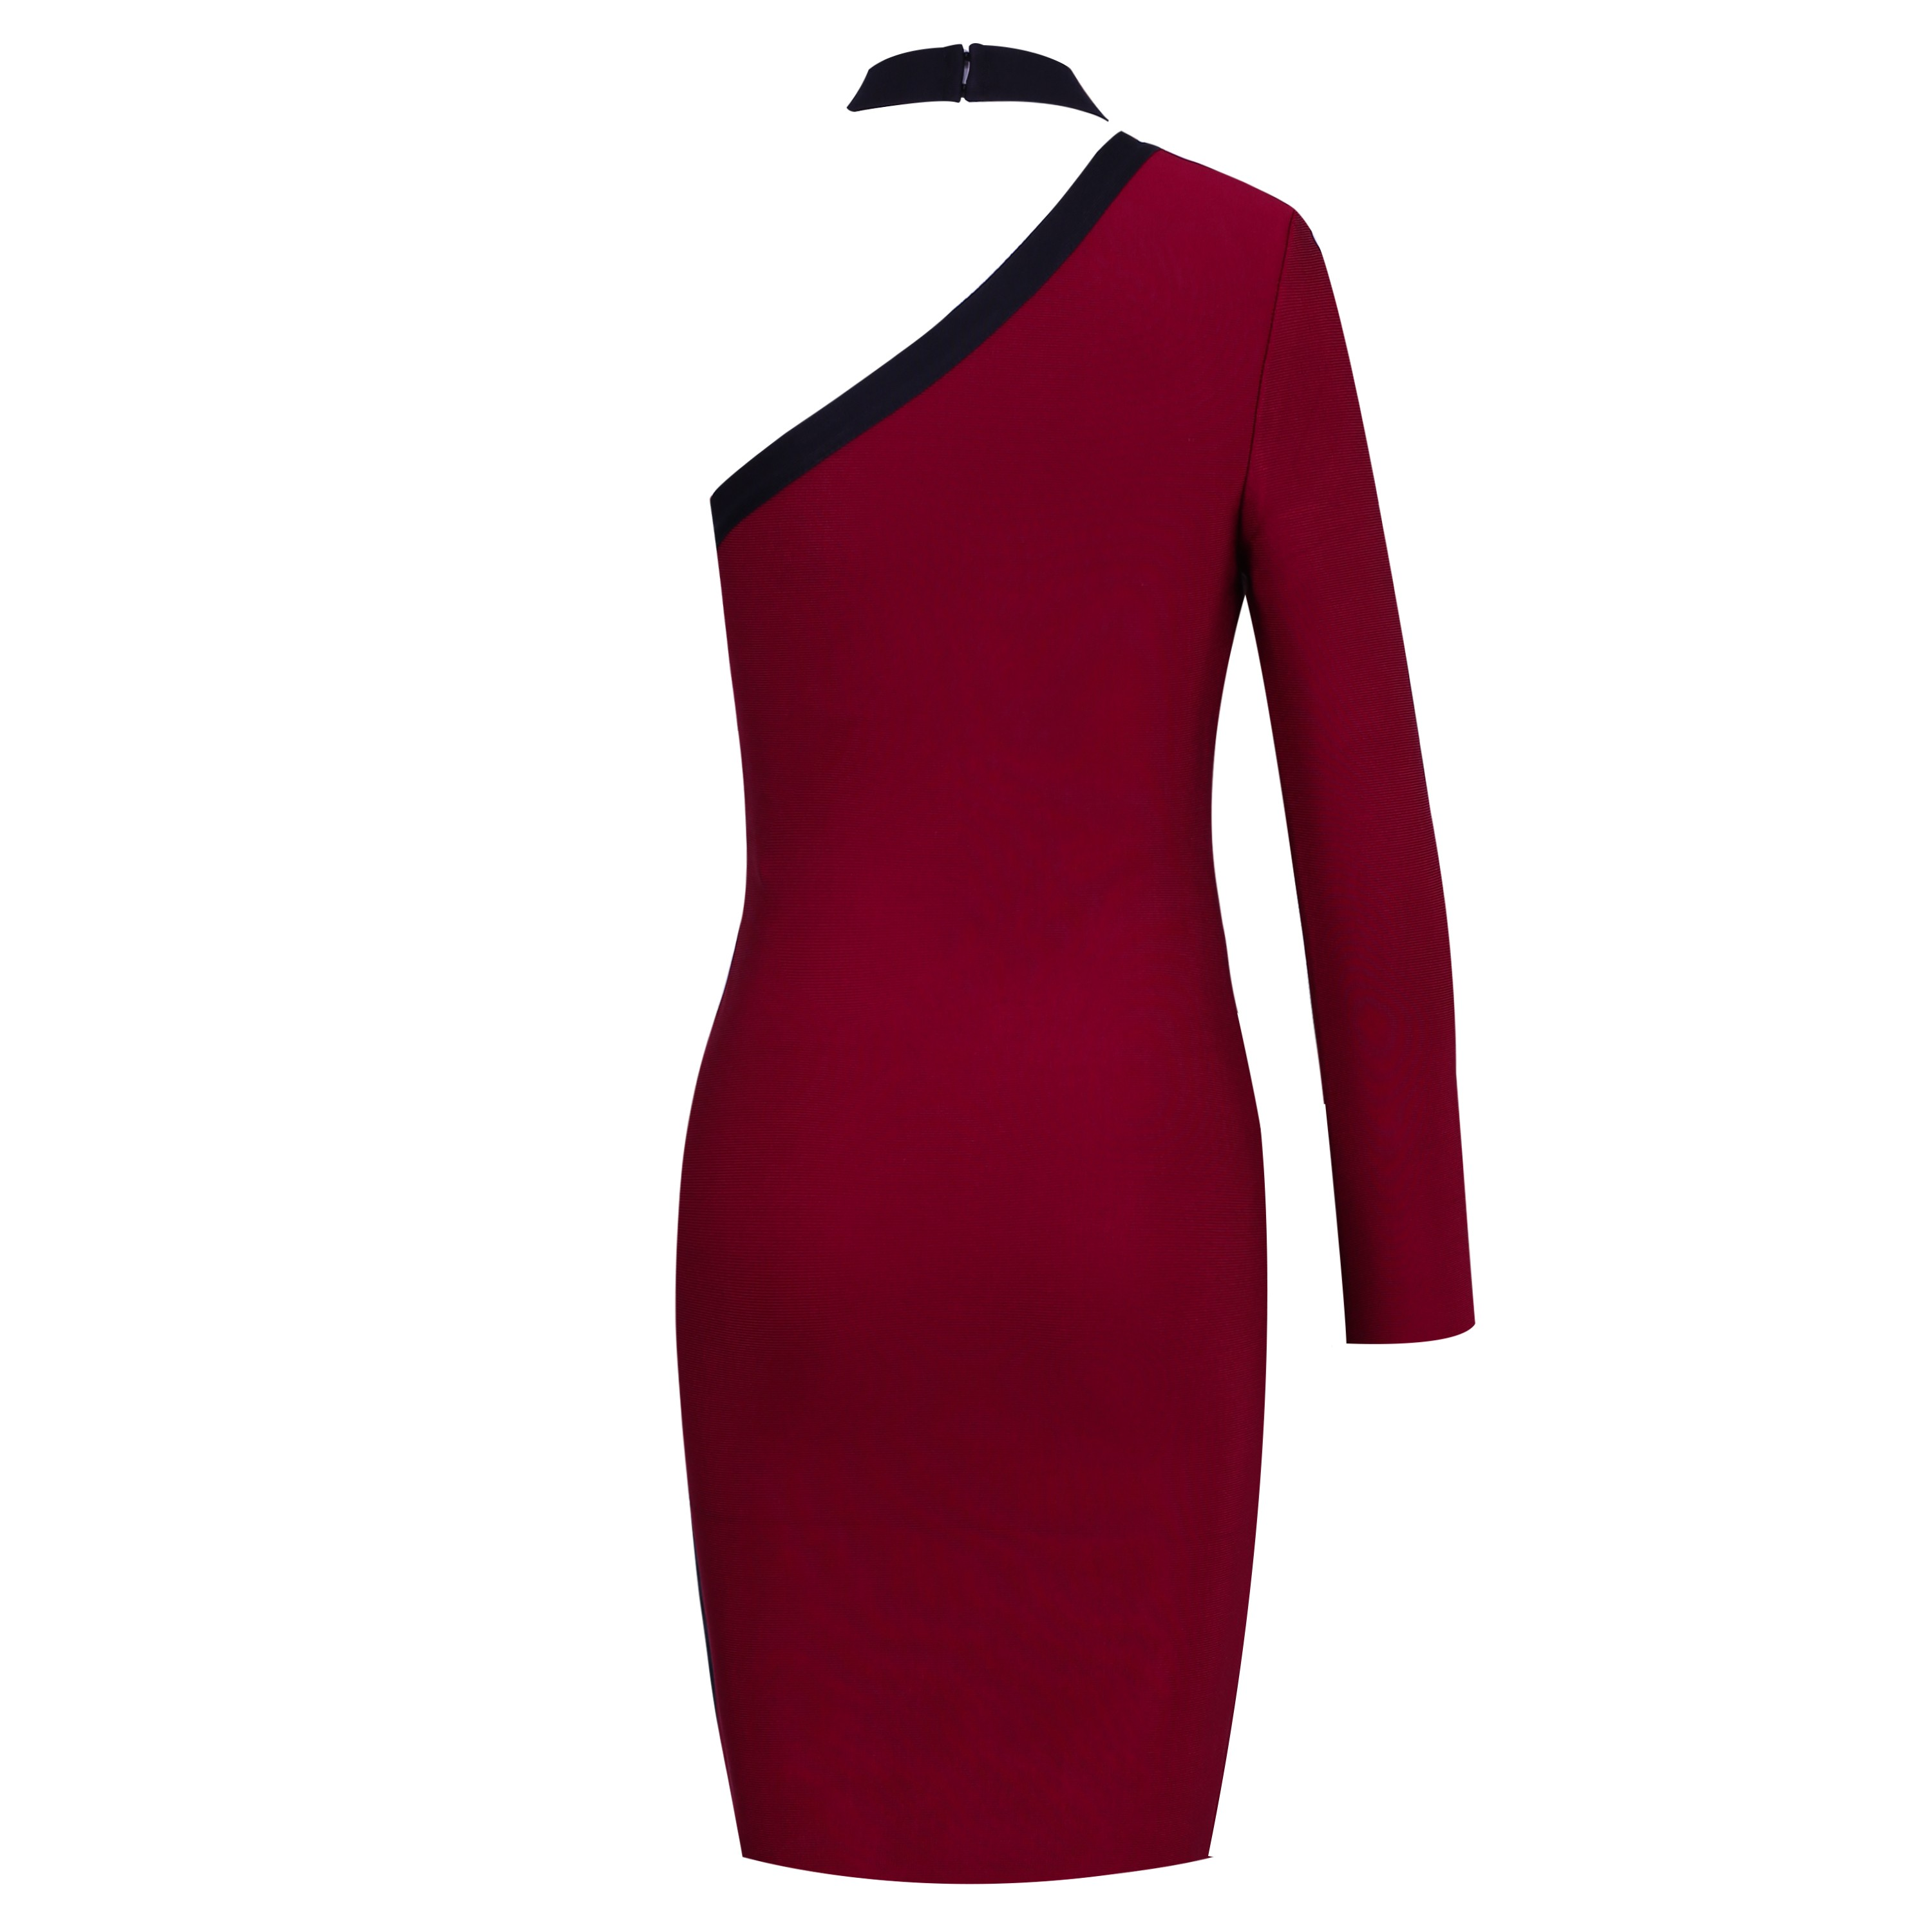 Wine One Shoulder Long Sleeve Knee Length Cut Out Plain Dropshipping Bandage Dress HI906-Wine